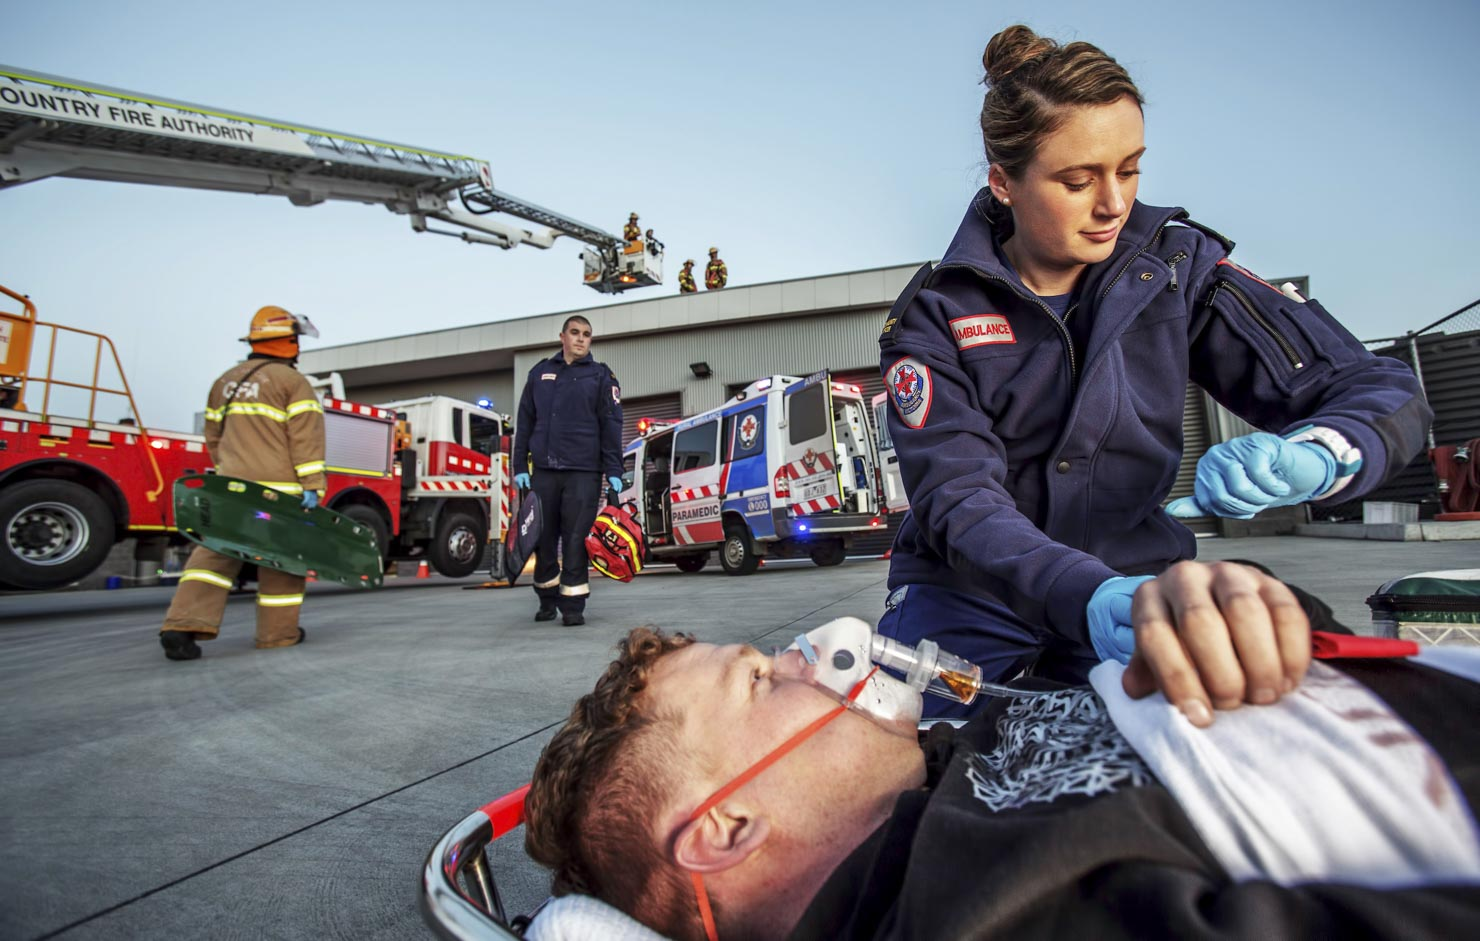 Ambulance Victoria paramedic works with a patient while fire brigade examine a roof